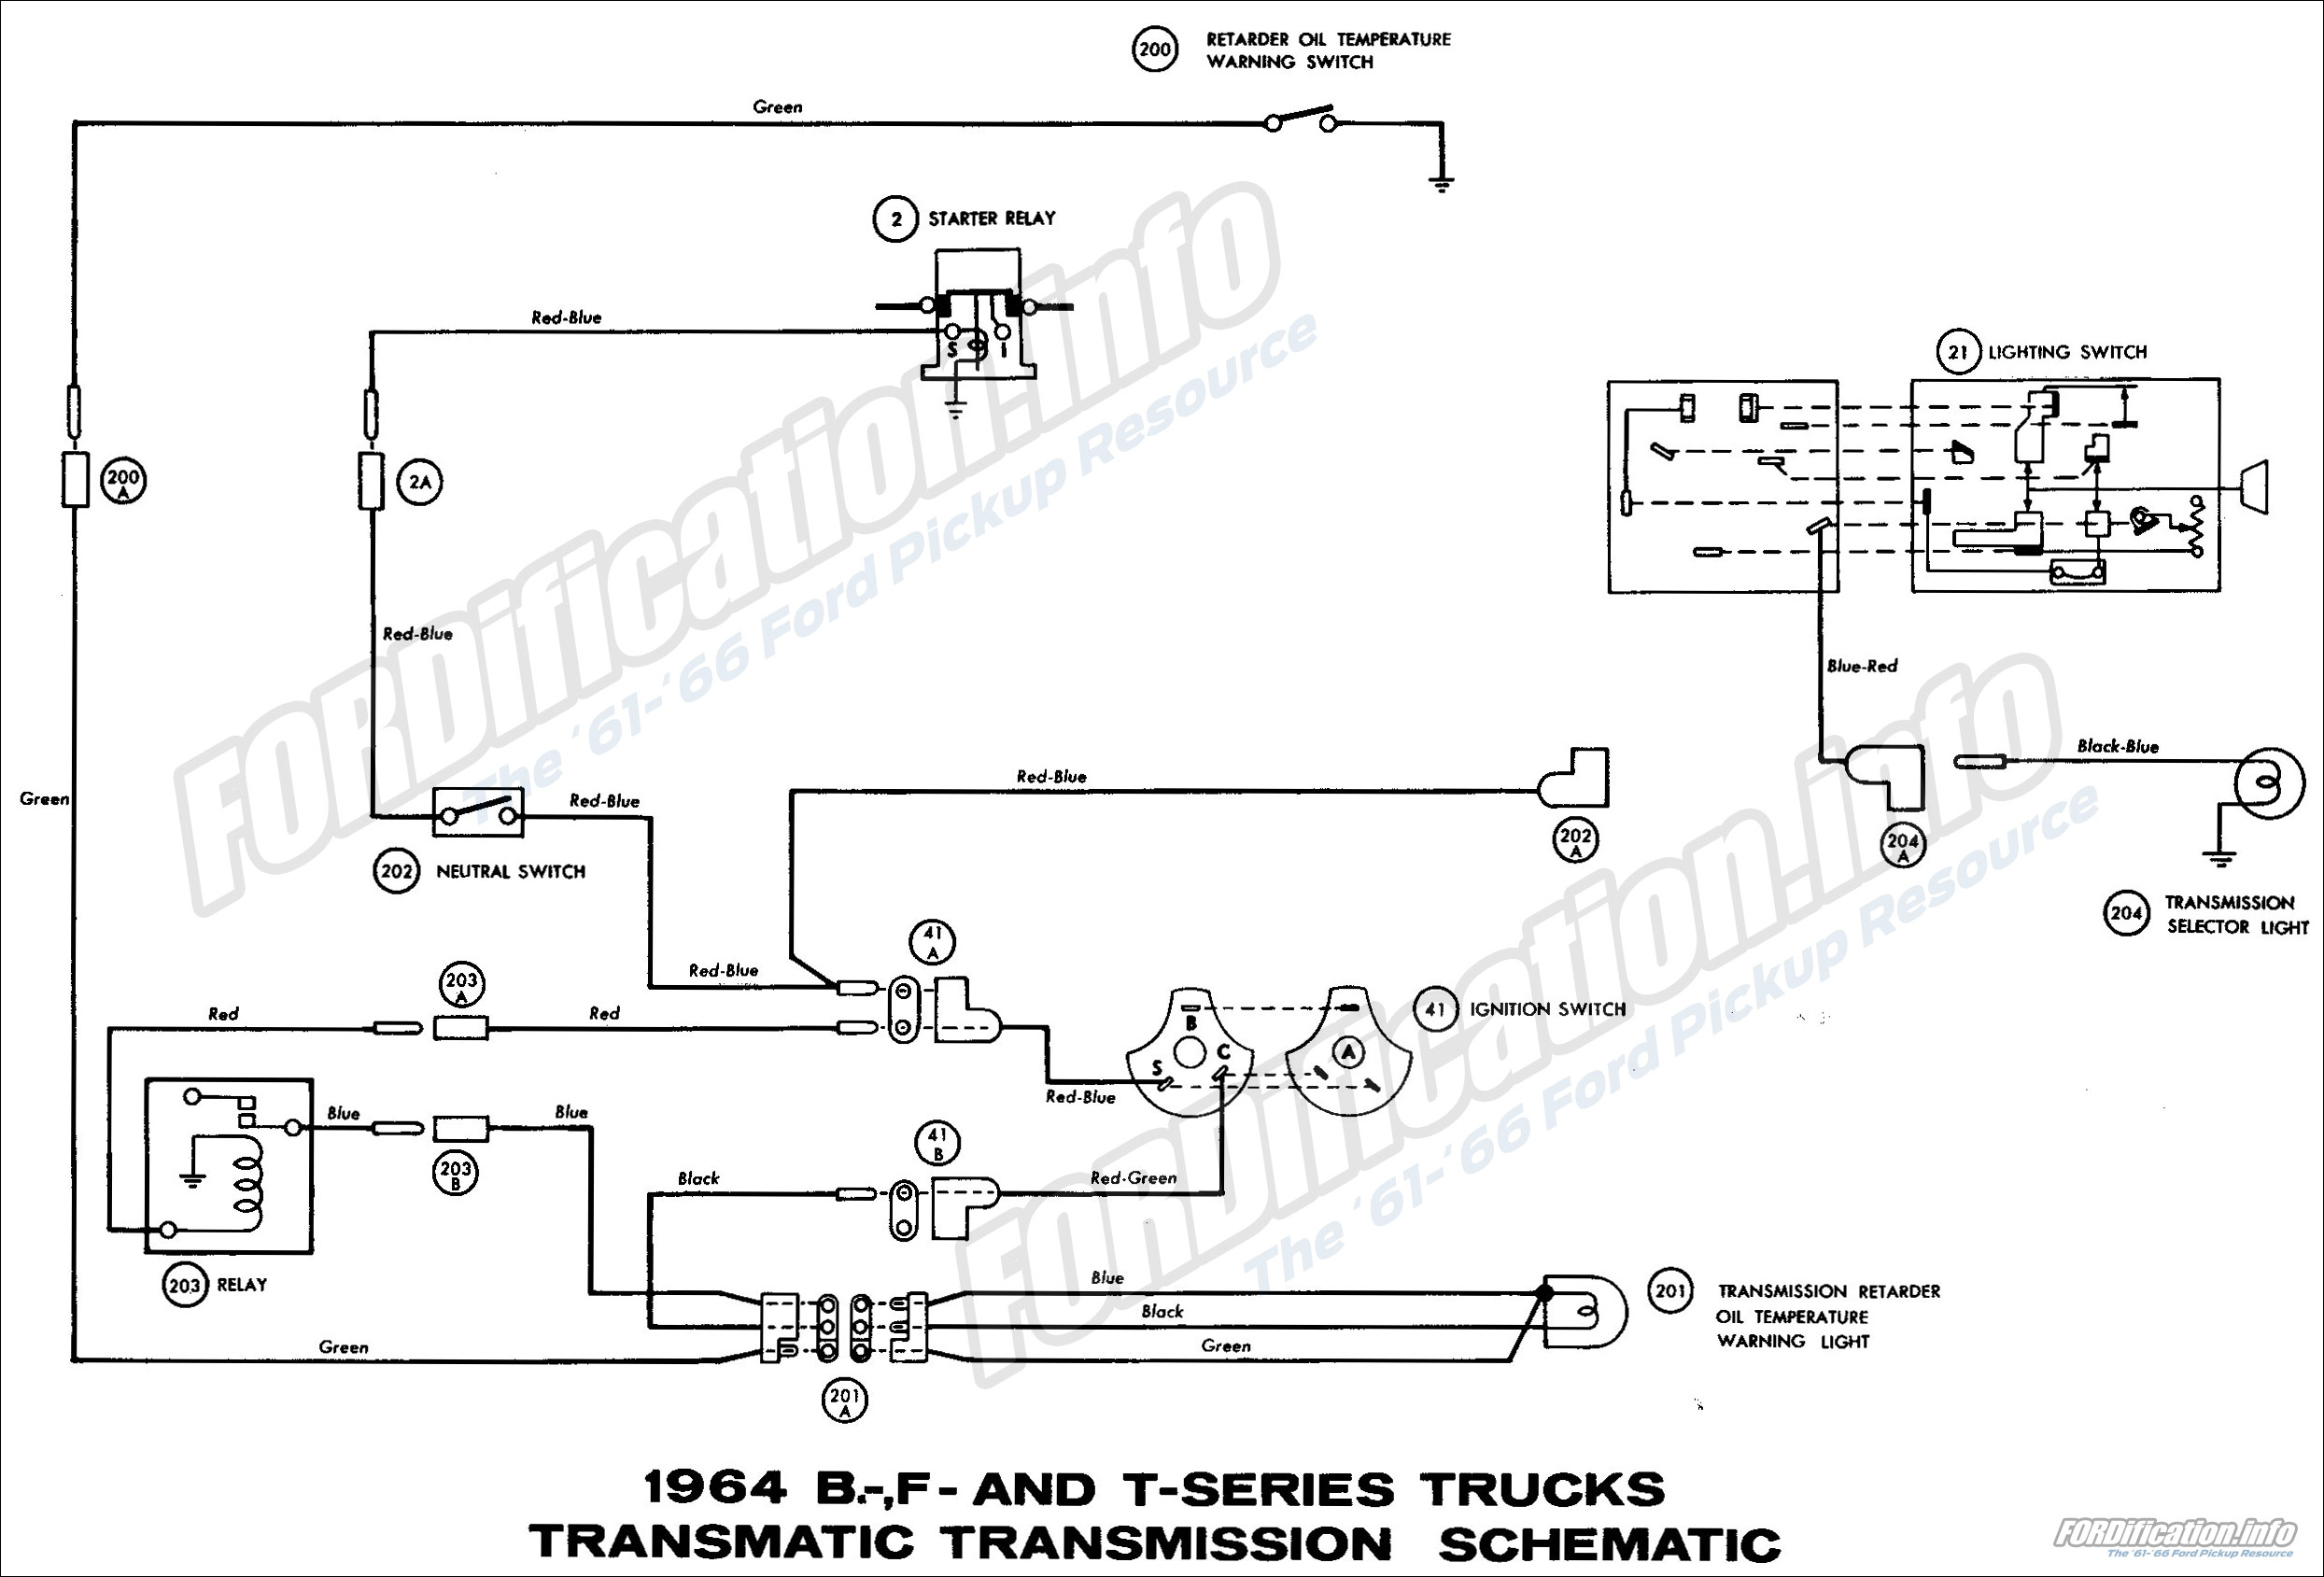 1964 ford truck wiring diagrams fordification info the \u002761 \u0027661964 b , f and t series truck transmatic transmission schematic